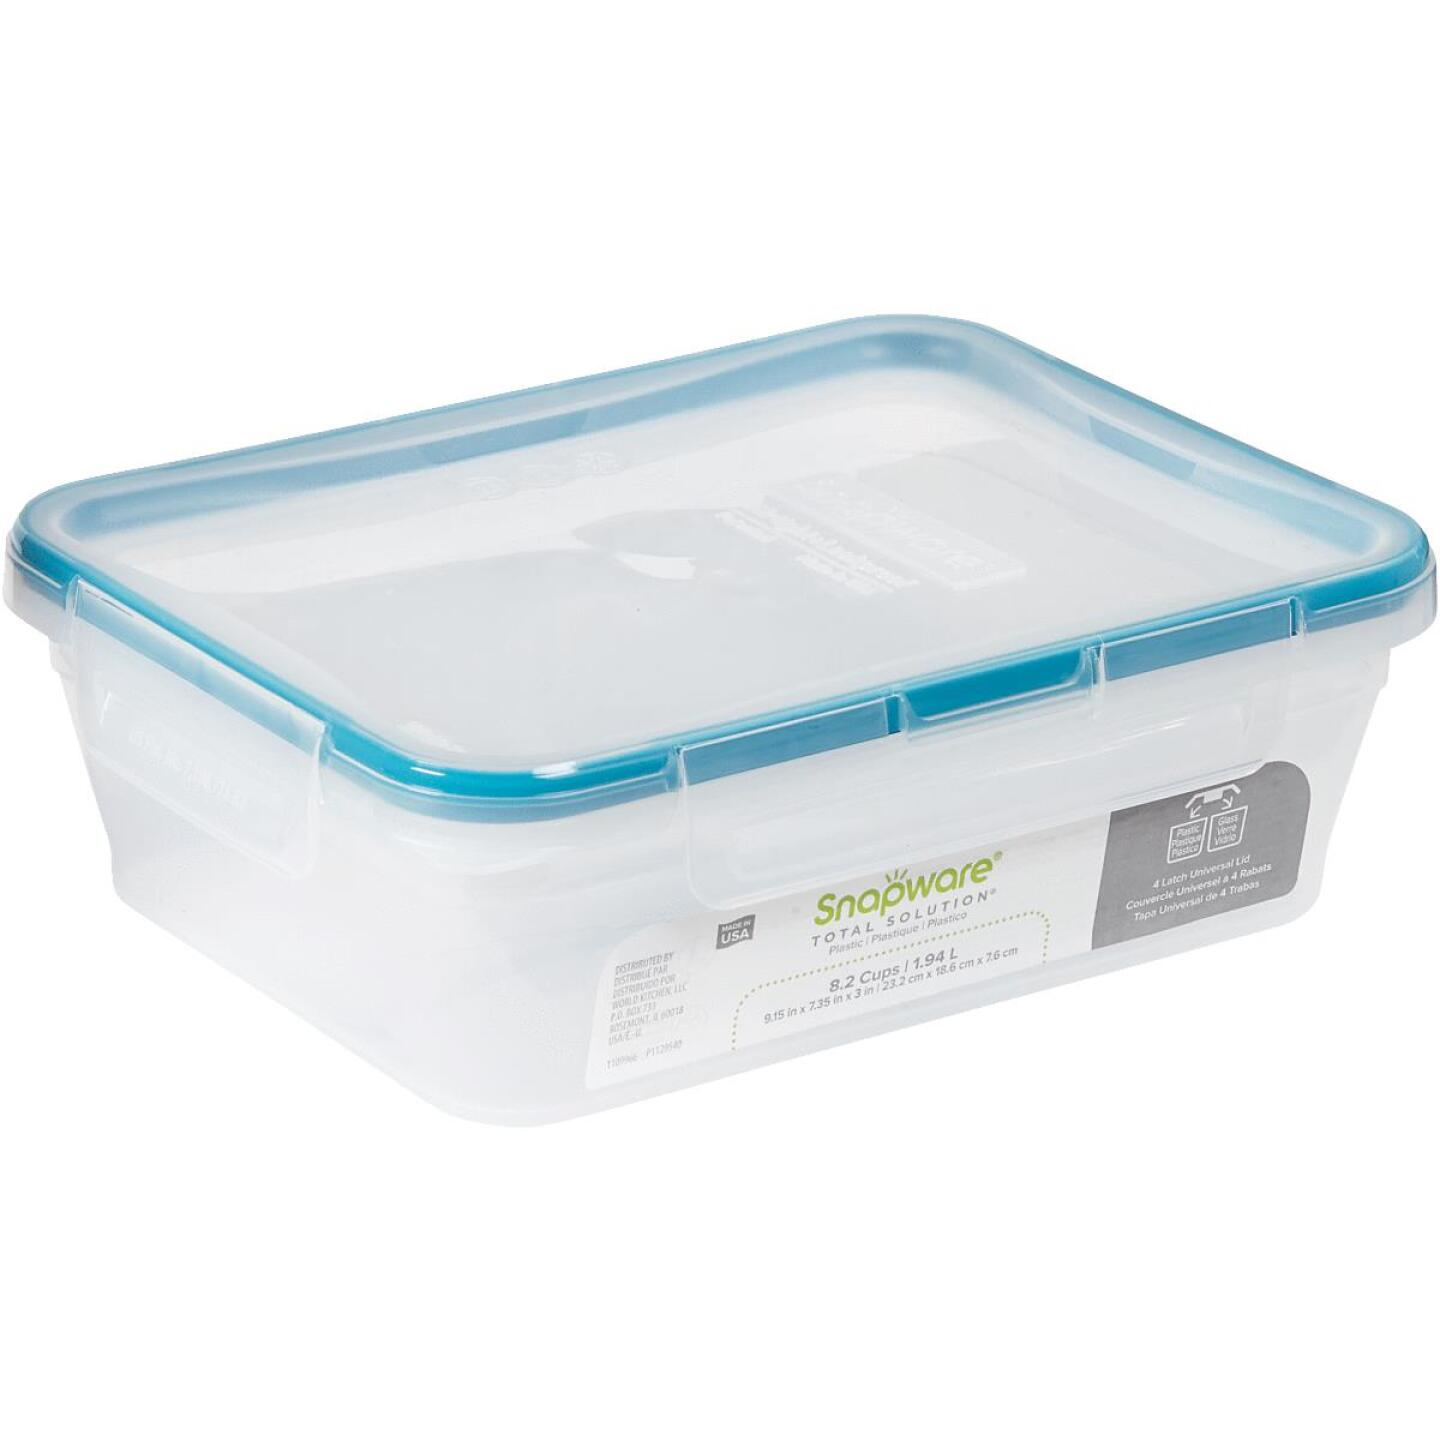 Snapware Total Solution 8.2 Cup Plastic Rectangle Food Storage Container with Lid Image 1